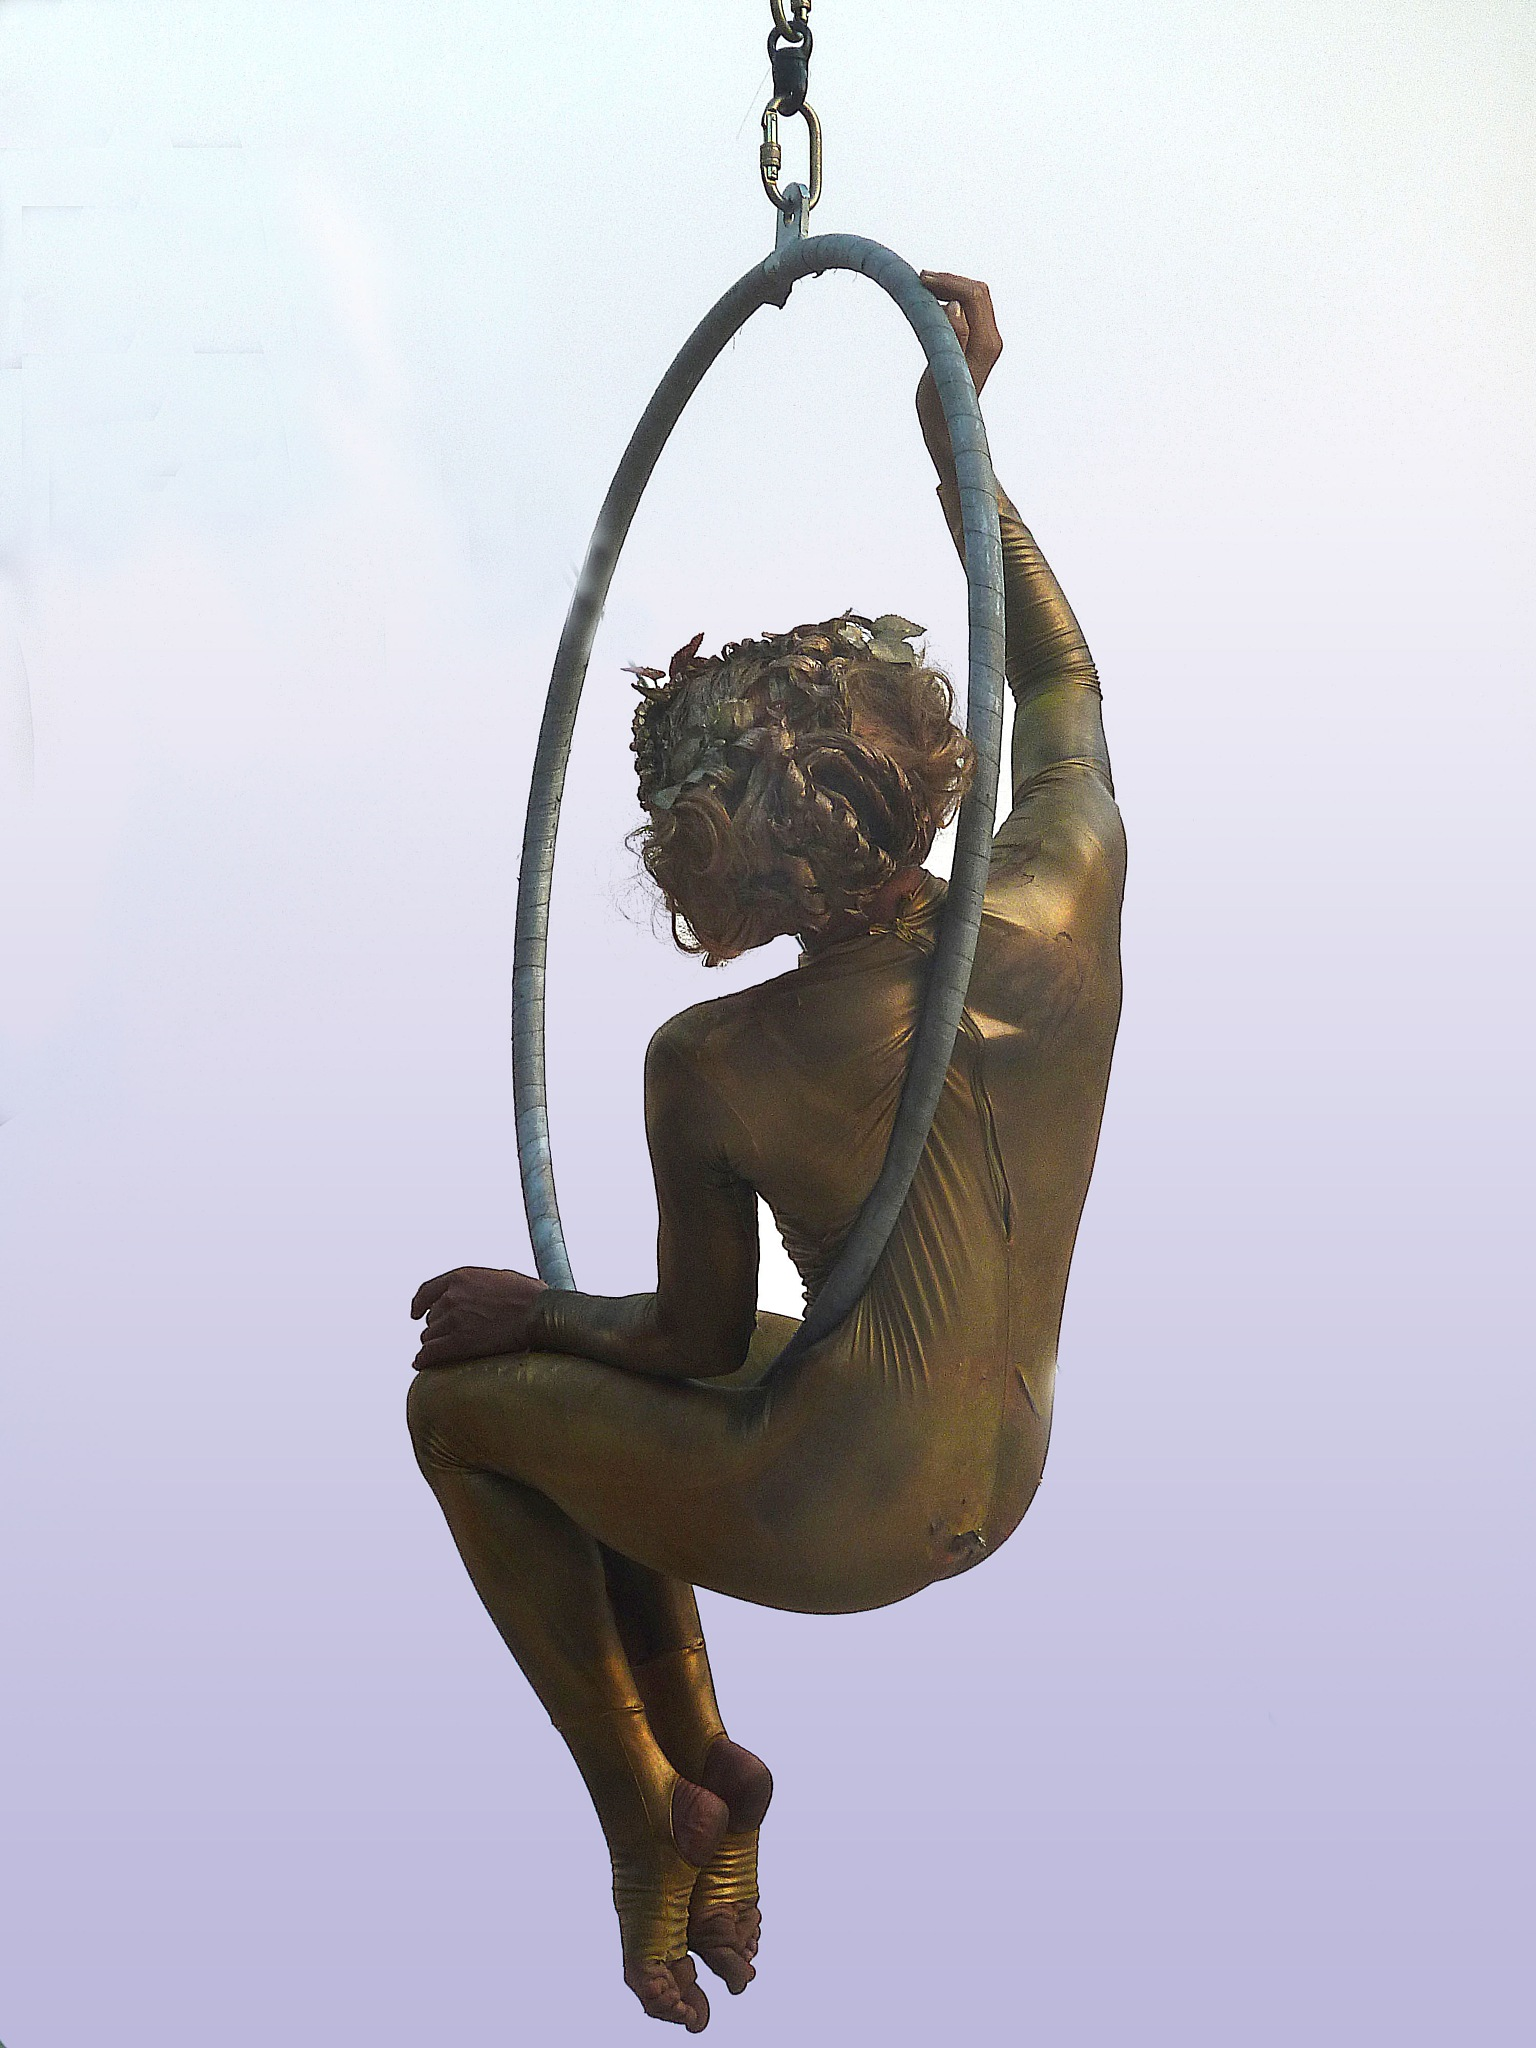 Acrobats in gold at the Festival by Rebecca Danieli